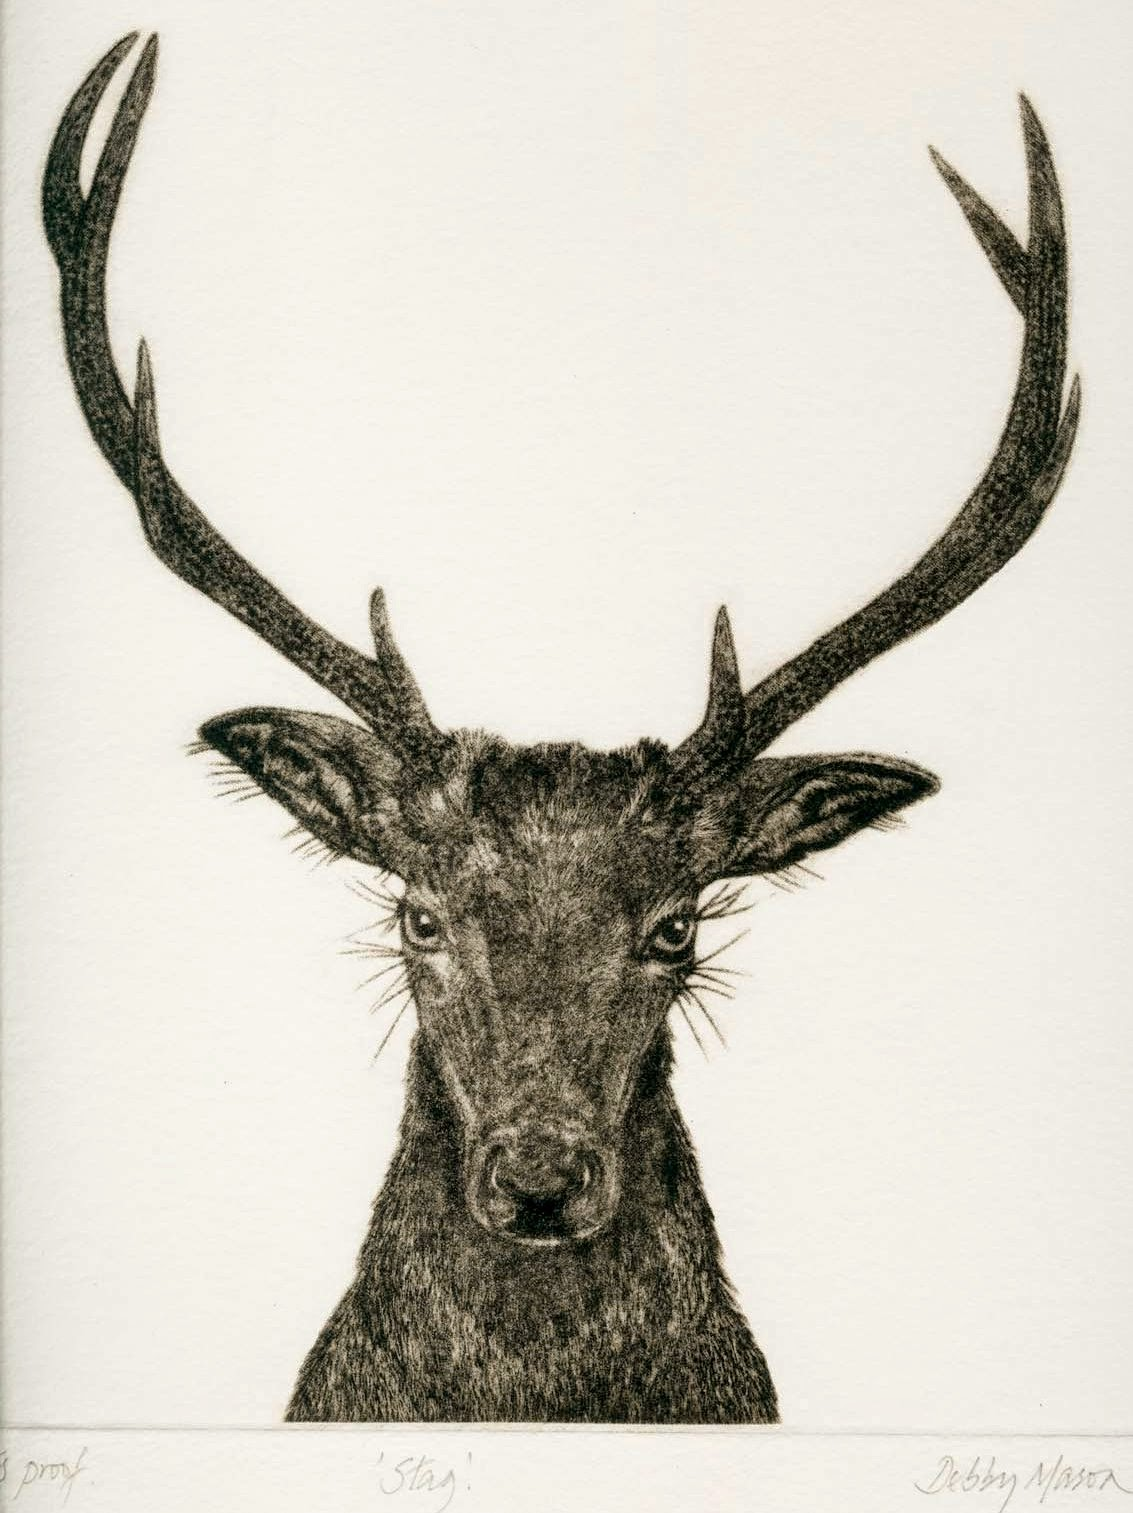 http://zoozon.blogspot.com/2014/12/stag-pictures-gallery-3.html